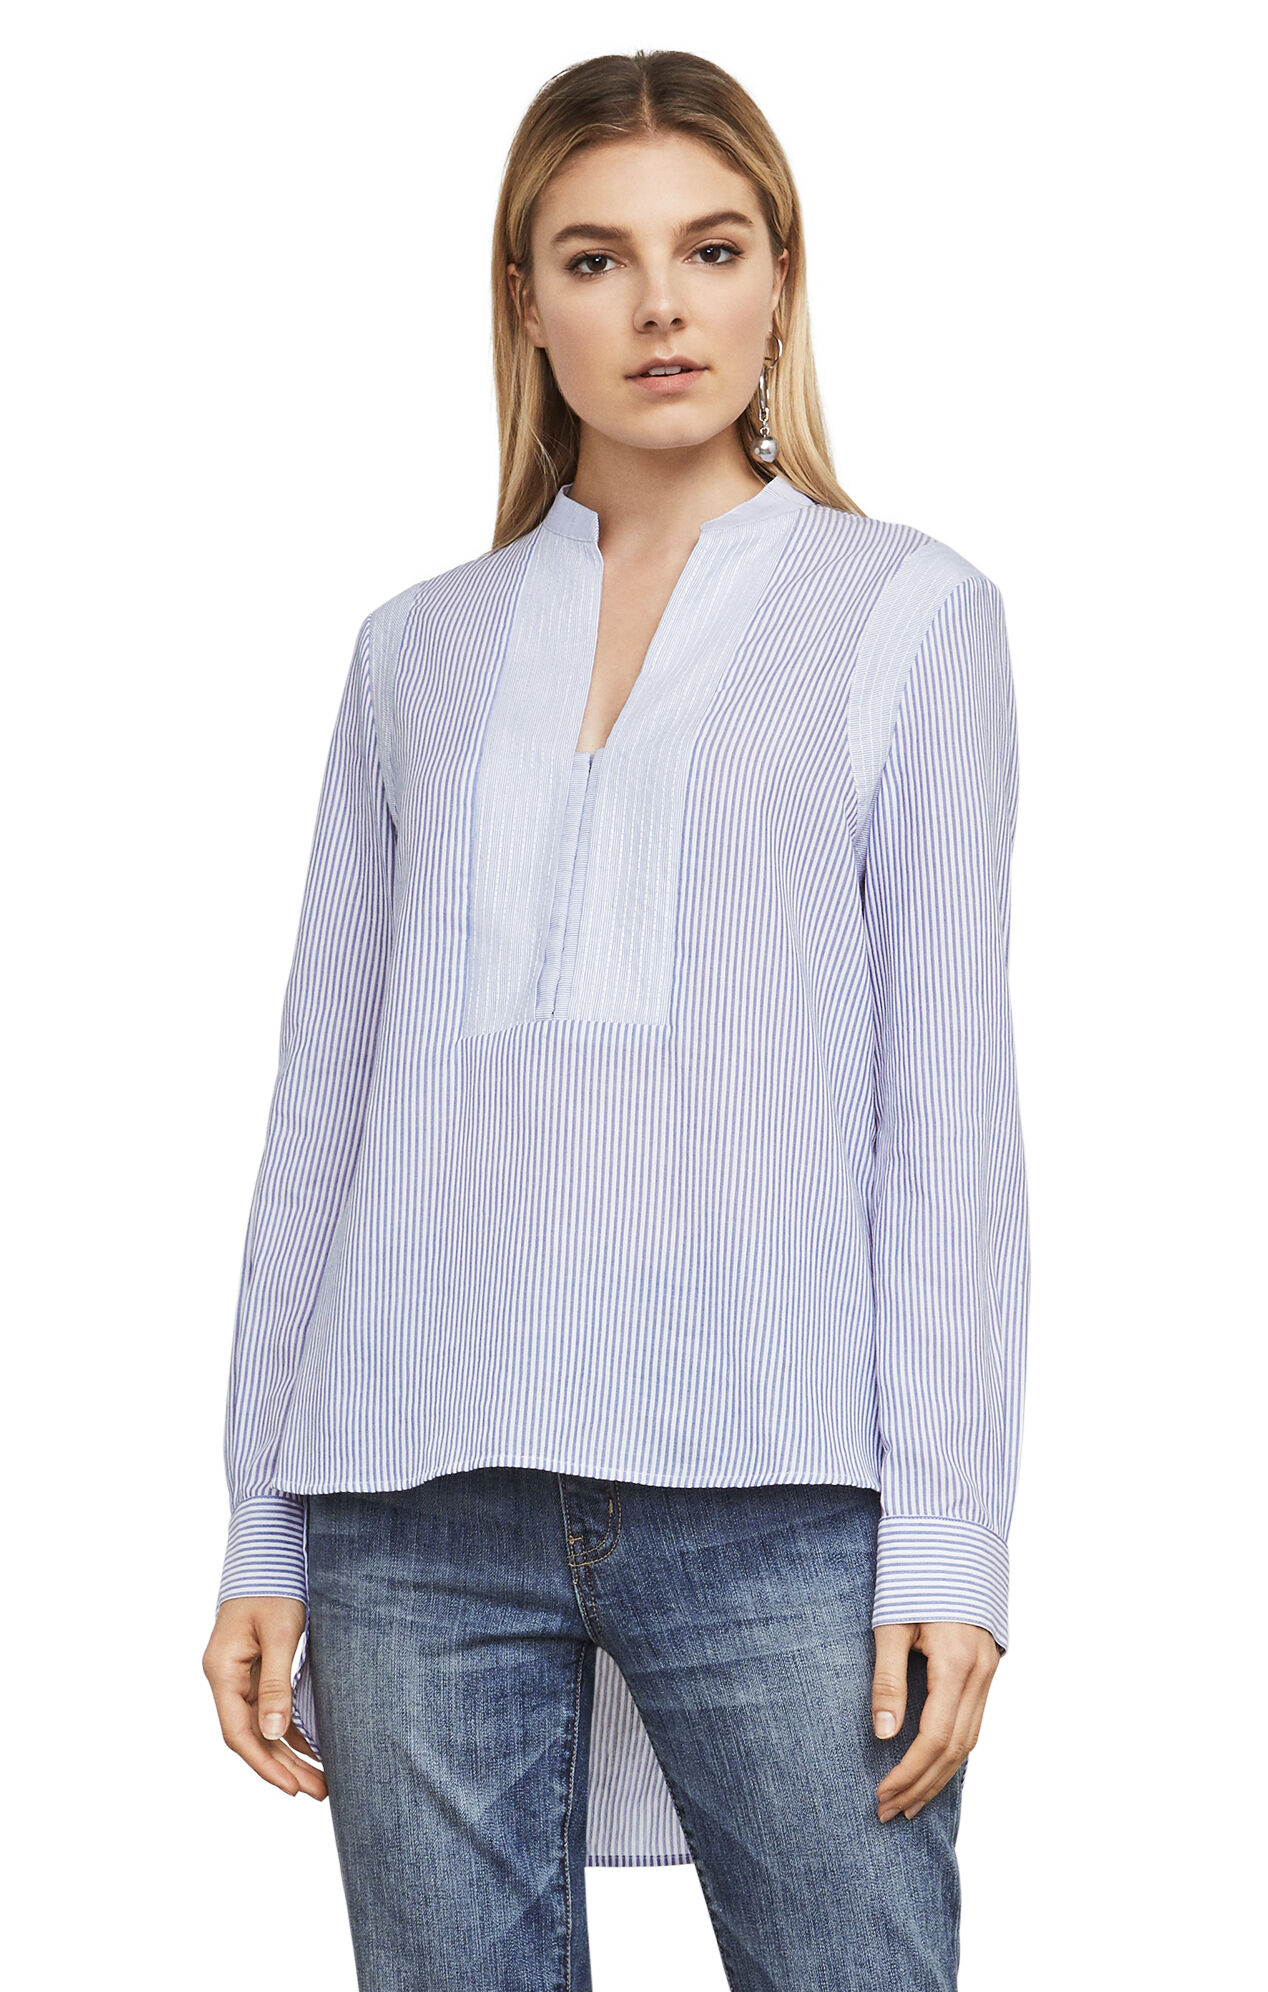 Jola Long-Sleeve Fabric-Blocked Top